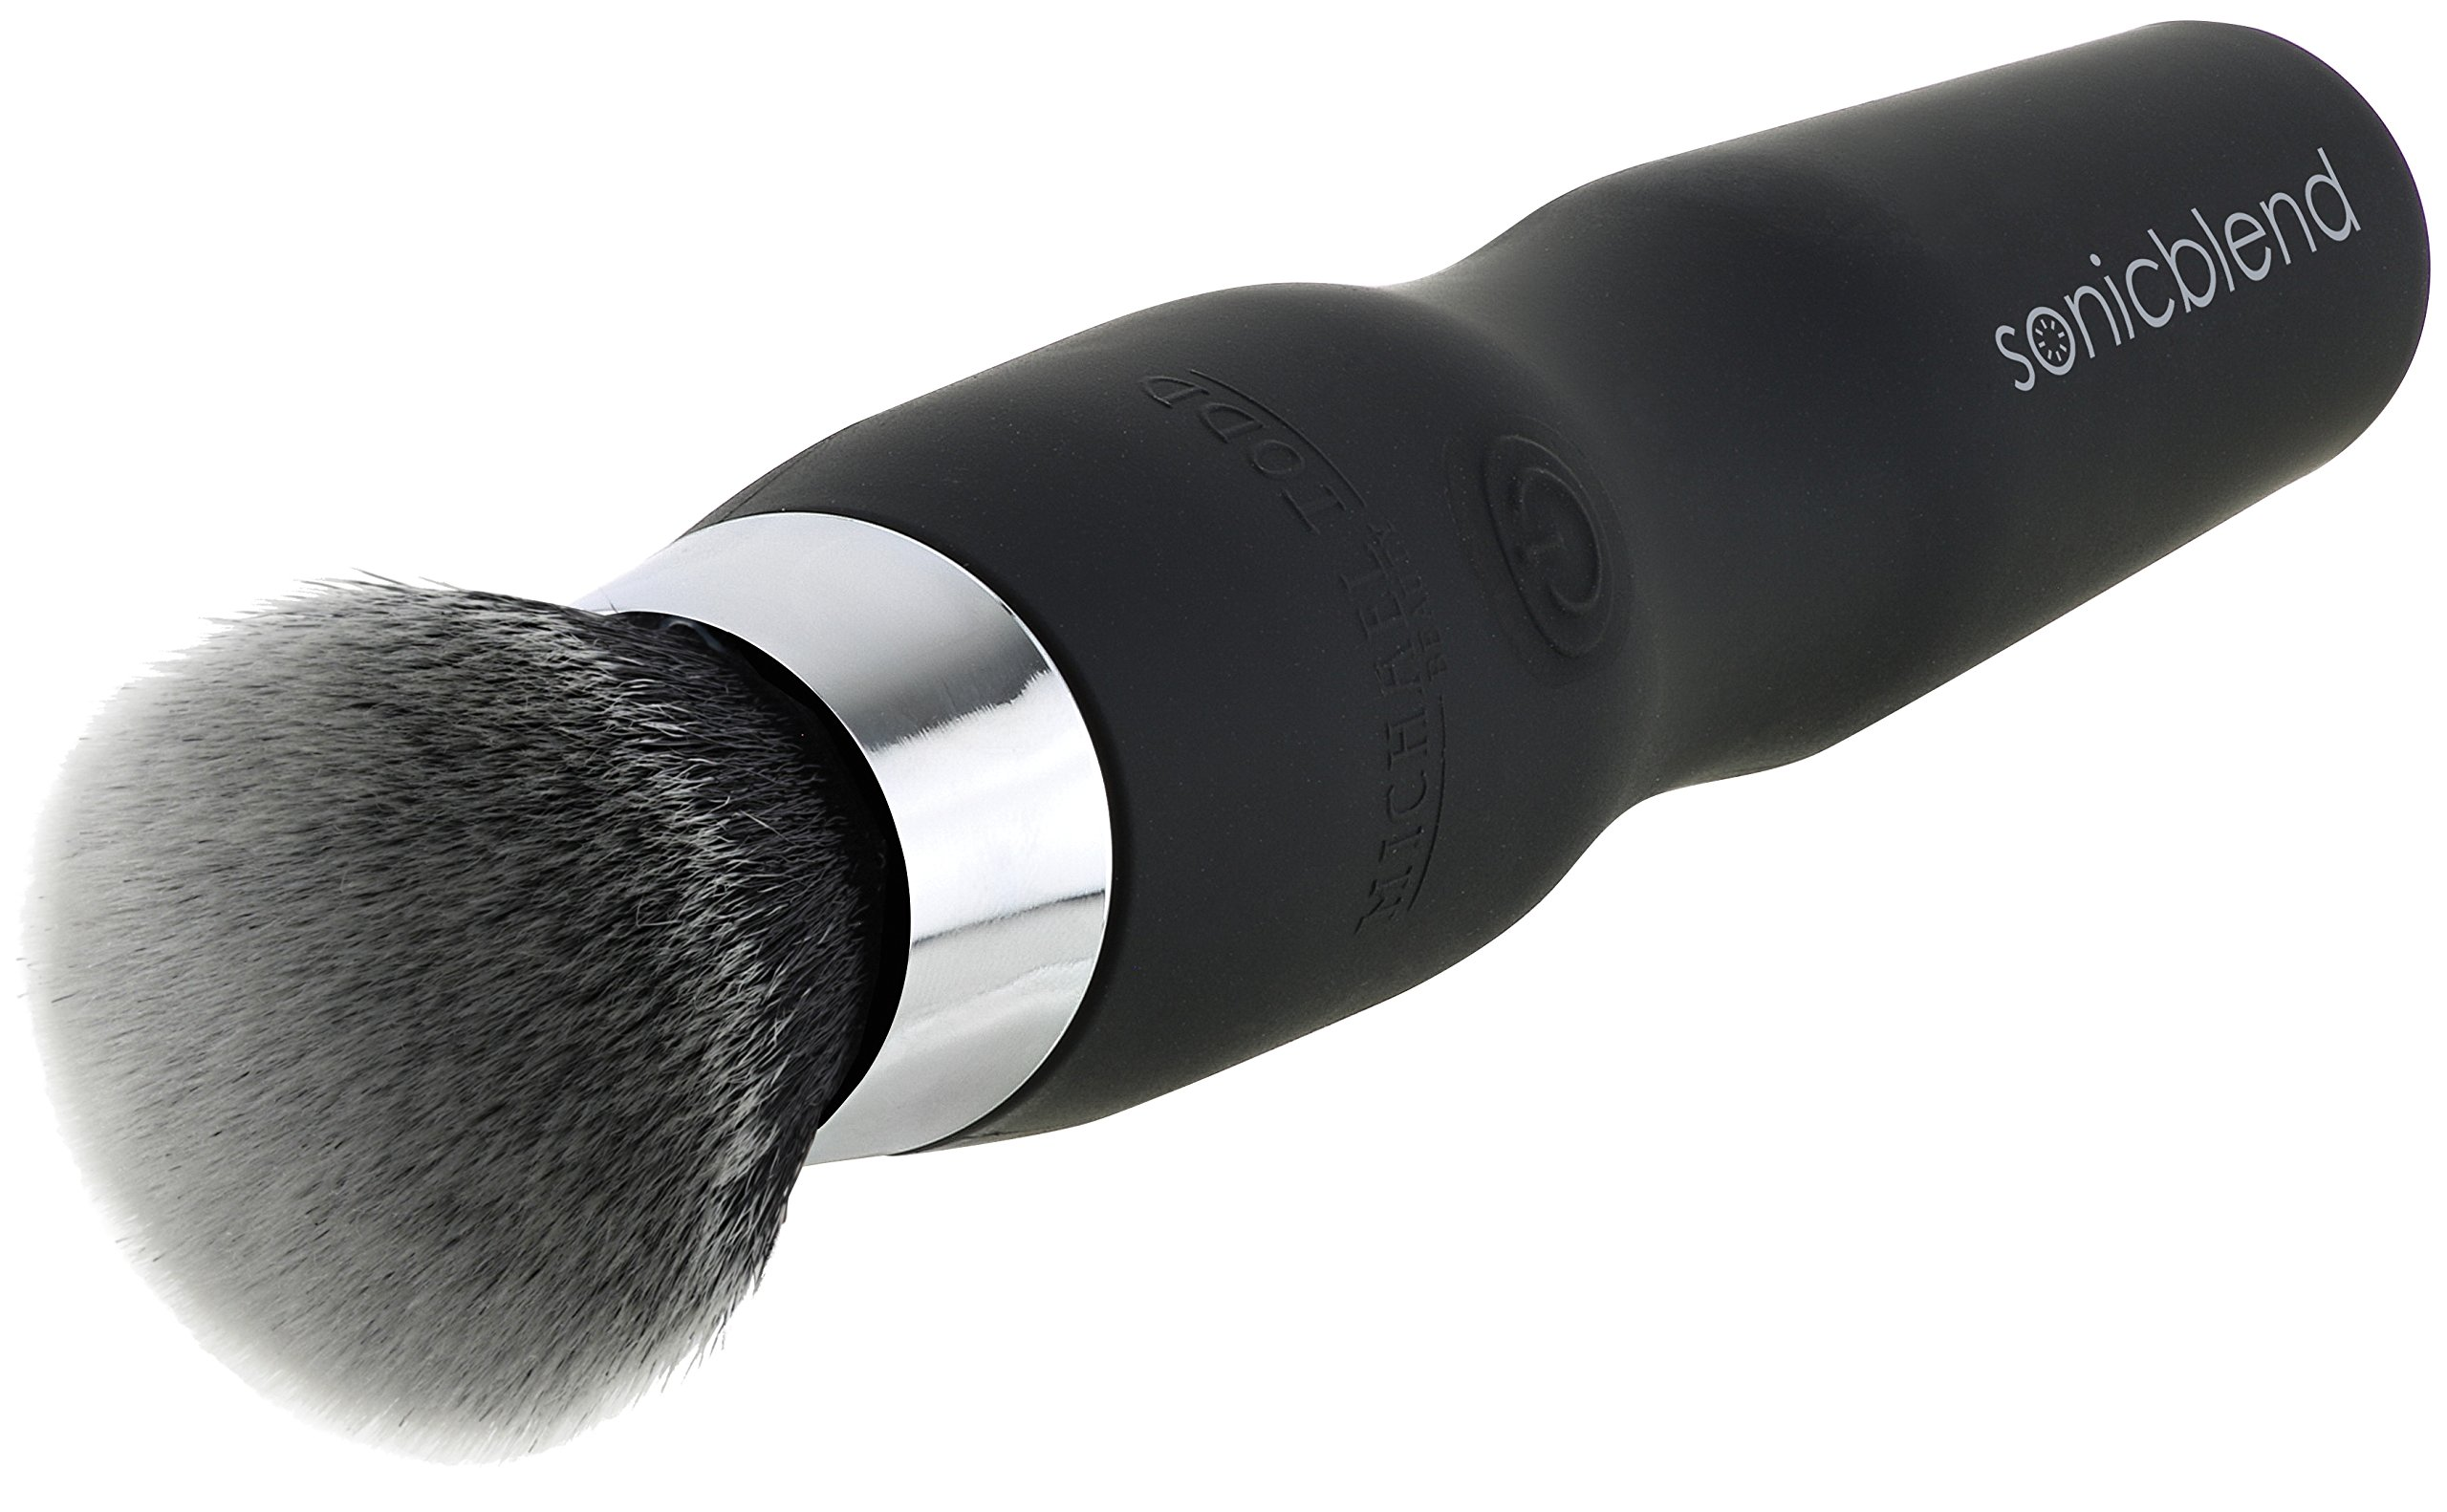 Michael Todd Sonicblend Antimicrobial Sonic Foundation Makeup Brush for Blending, Contouring and Airbrush Finish (Black)